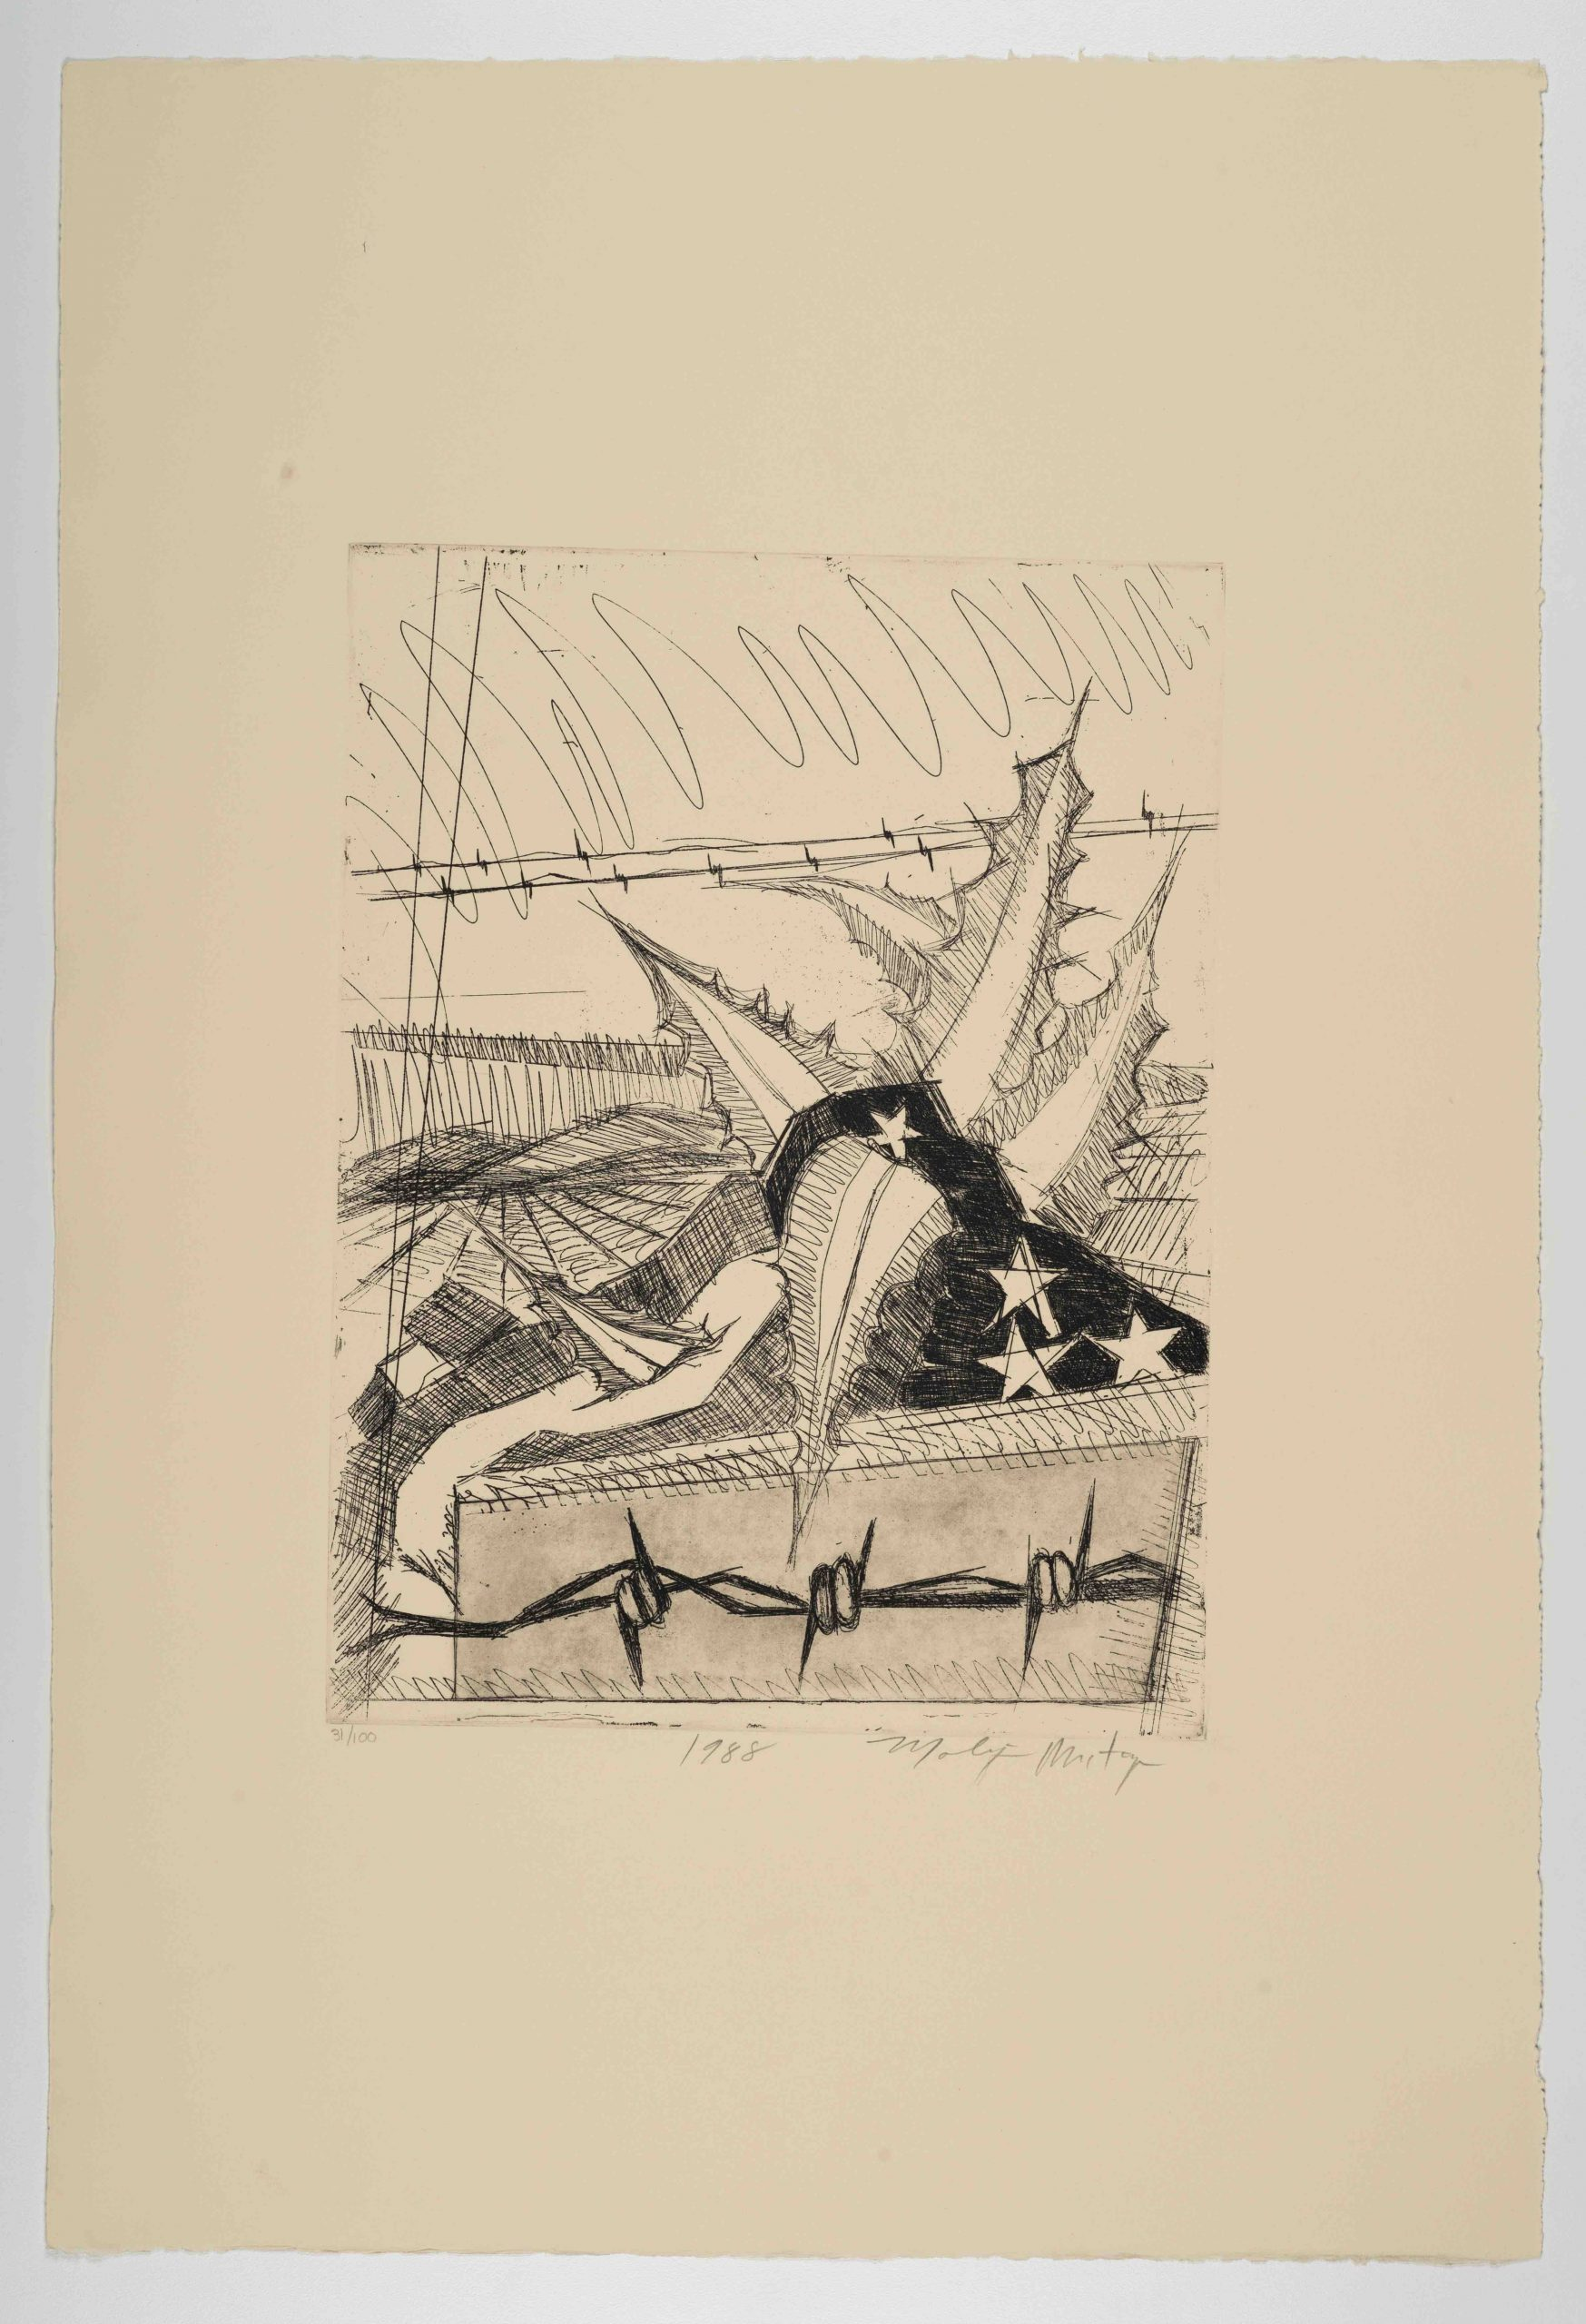 Malaquías Montoya, Untitled [Sin título], from The New Immigration series, 1988, etching, 22 x 15 5/16 in. (55.9 x 38.9 cm), featuring a spiked plant piercing an American flag with barbed wire, Blanton Museum of Art, The University of Texas at Austin, Gift of Gilberto Cardenas, 2017